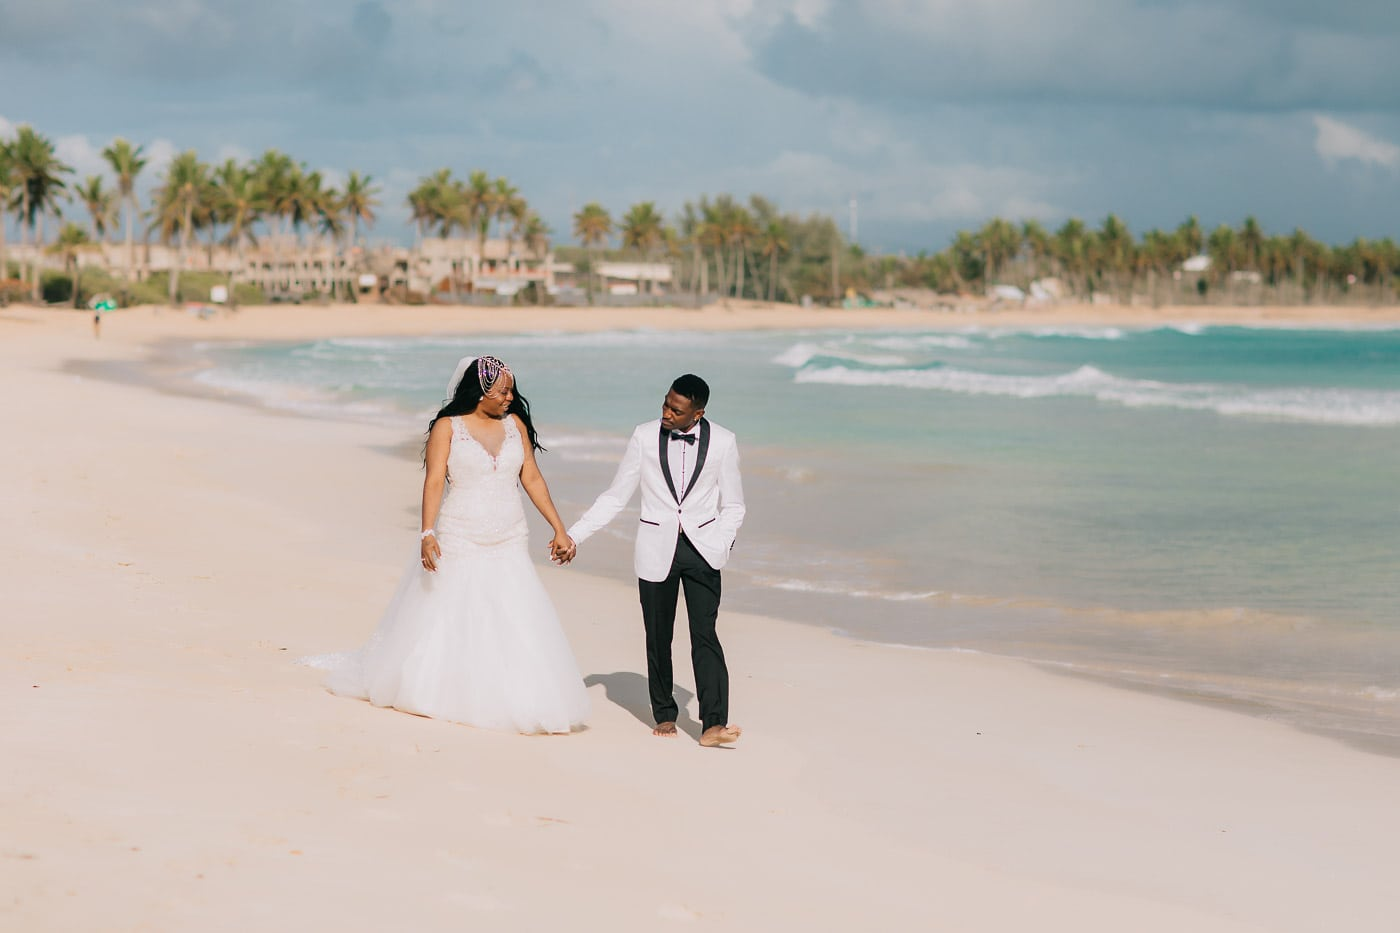 Planning Your Destination Wedding During a Pandemic